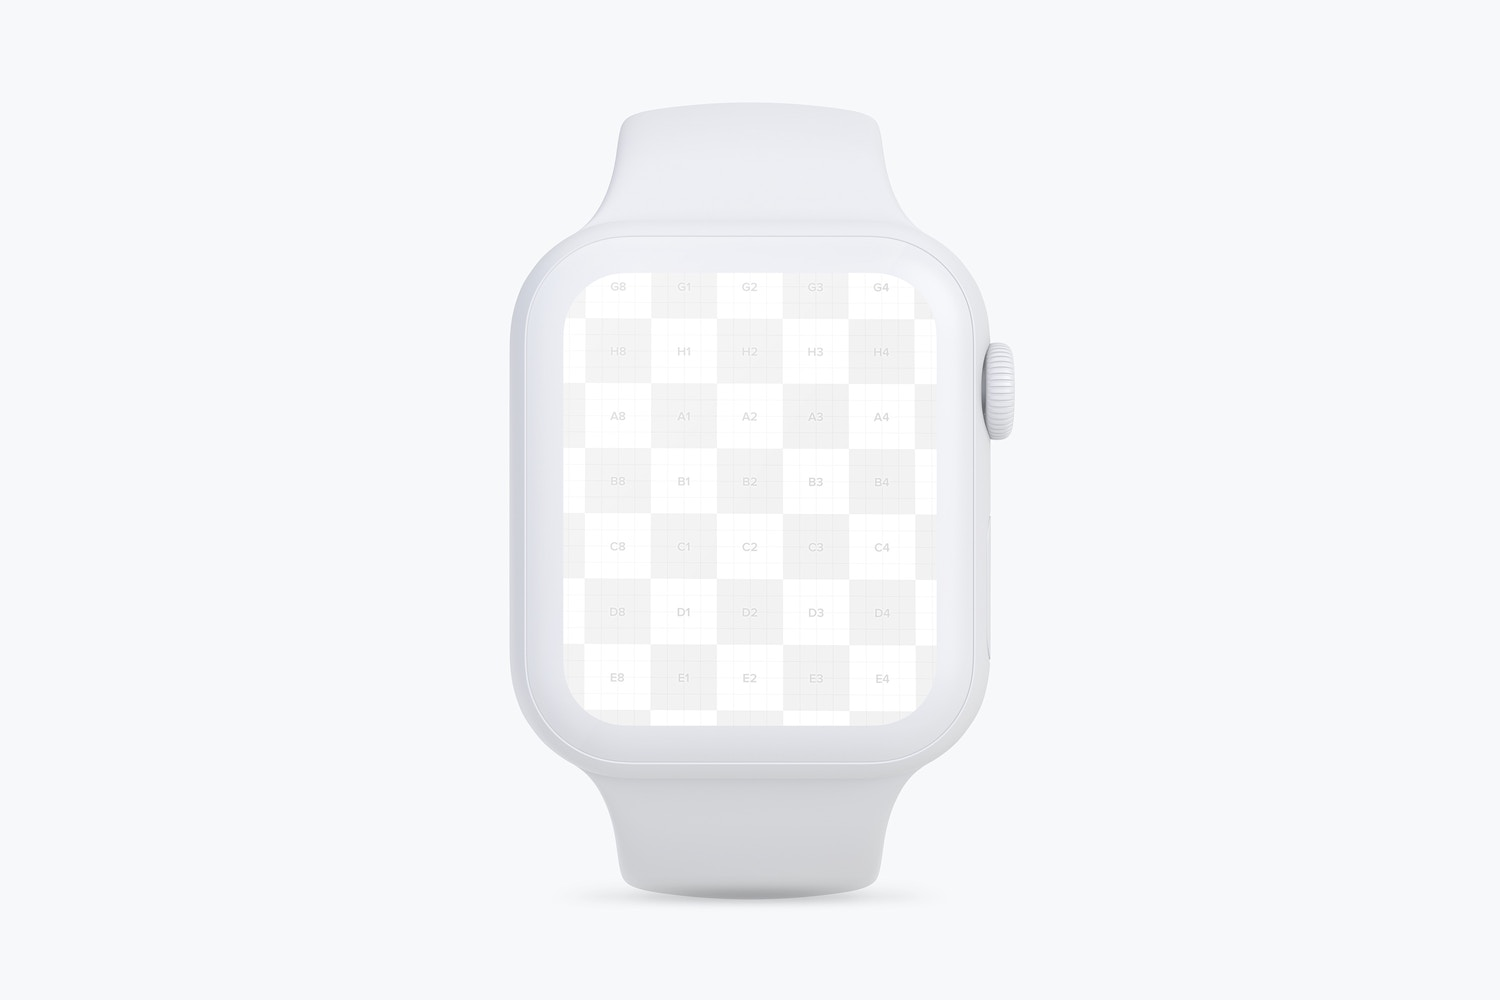 Clay Apple Watch Series 4 (44mm) Mockup, Front View (1) by Original Mockups on Original Mockups